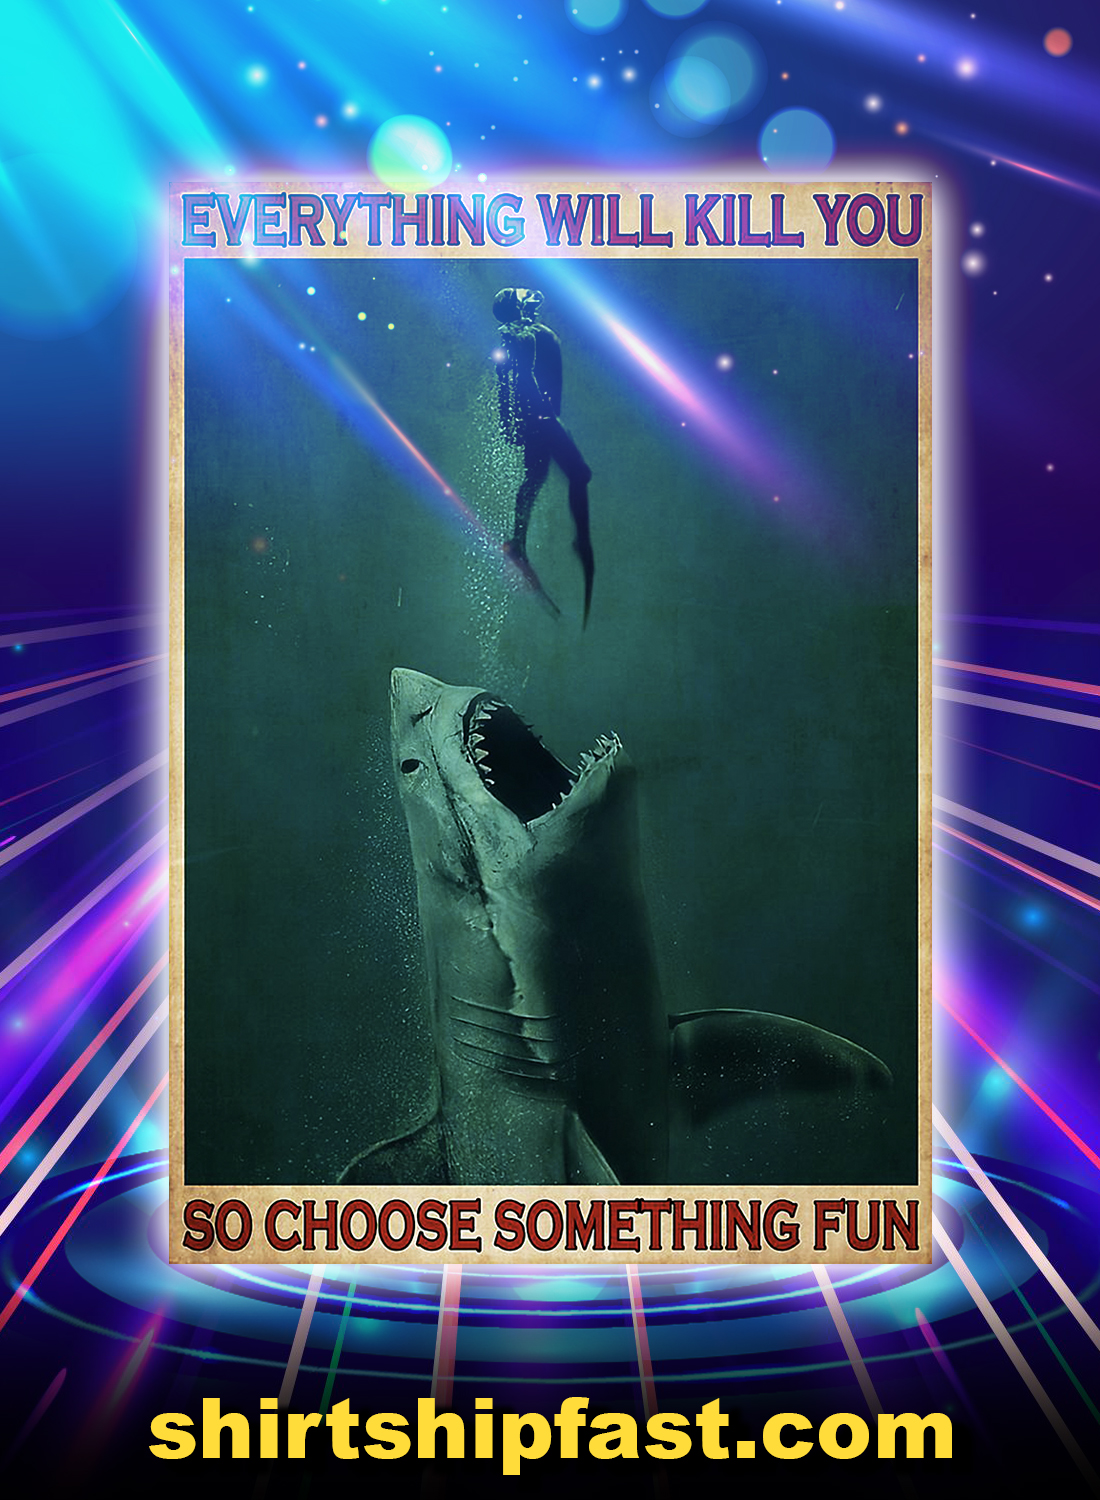 Go Diving With Shark Everything Will Kill You Poster - A4